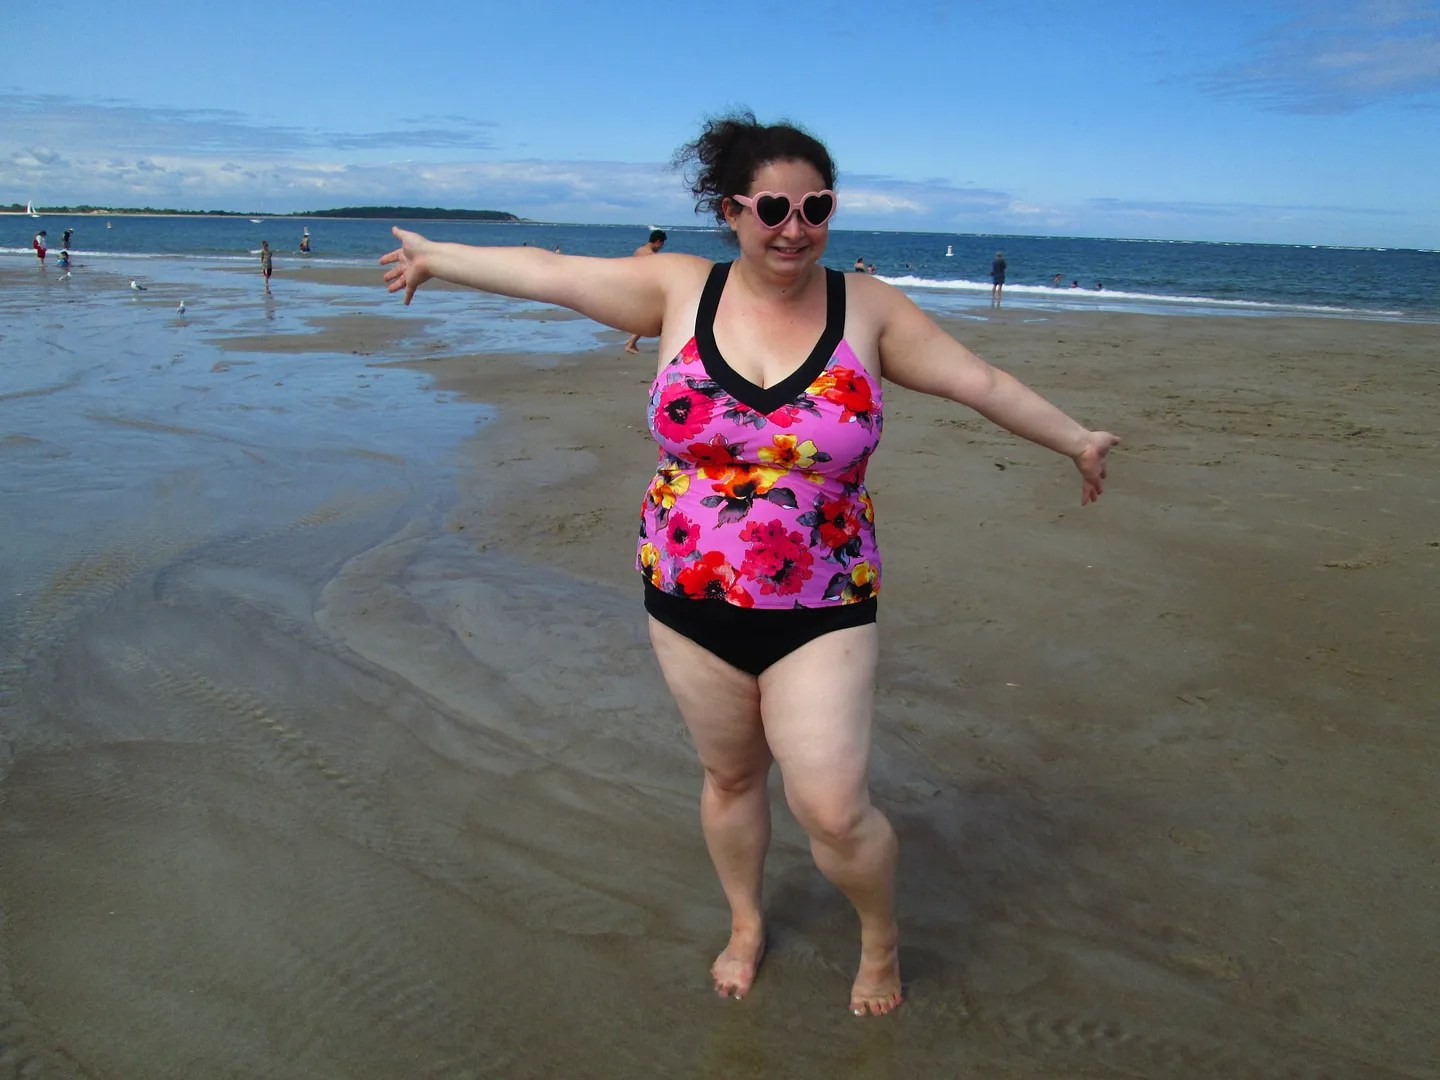 plus size woman on beach wearing pink floral tankini